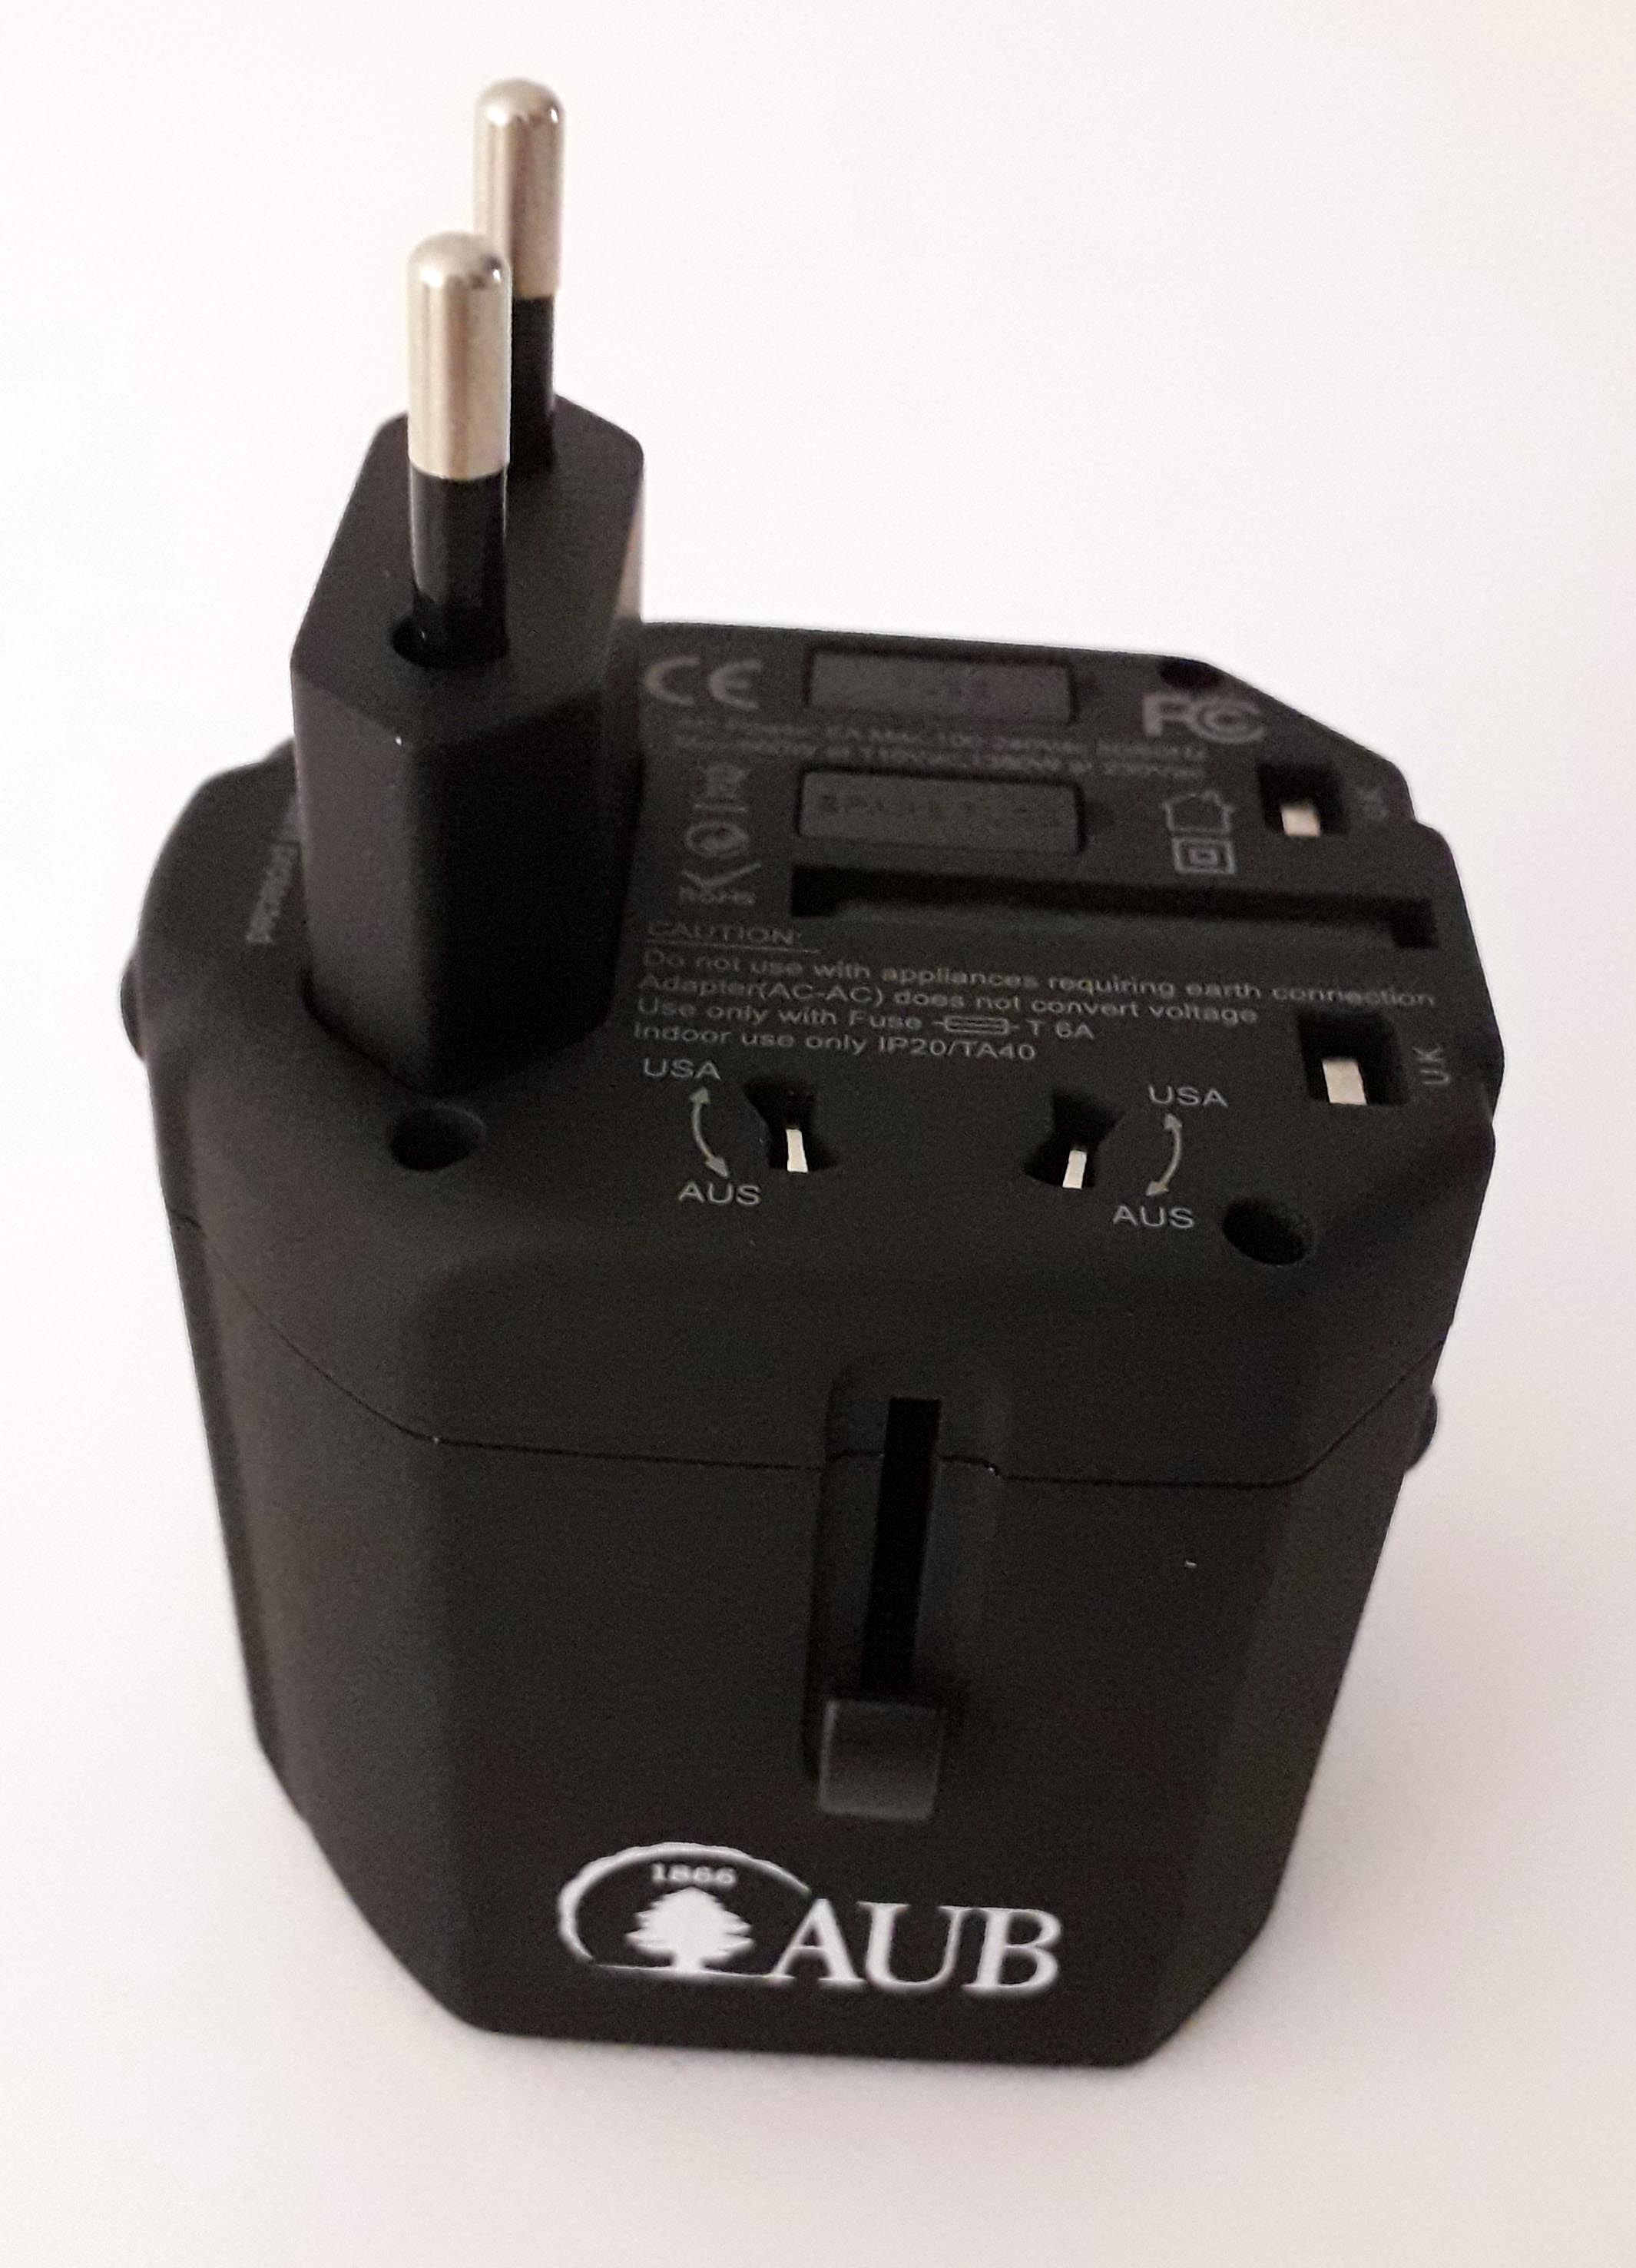 AUB USB Travel Adaptor 3.2A 002 Black